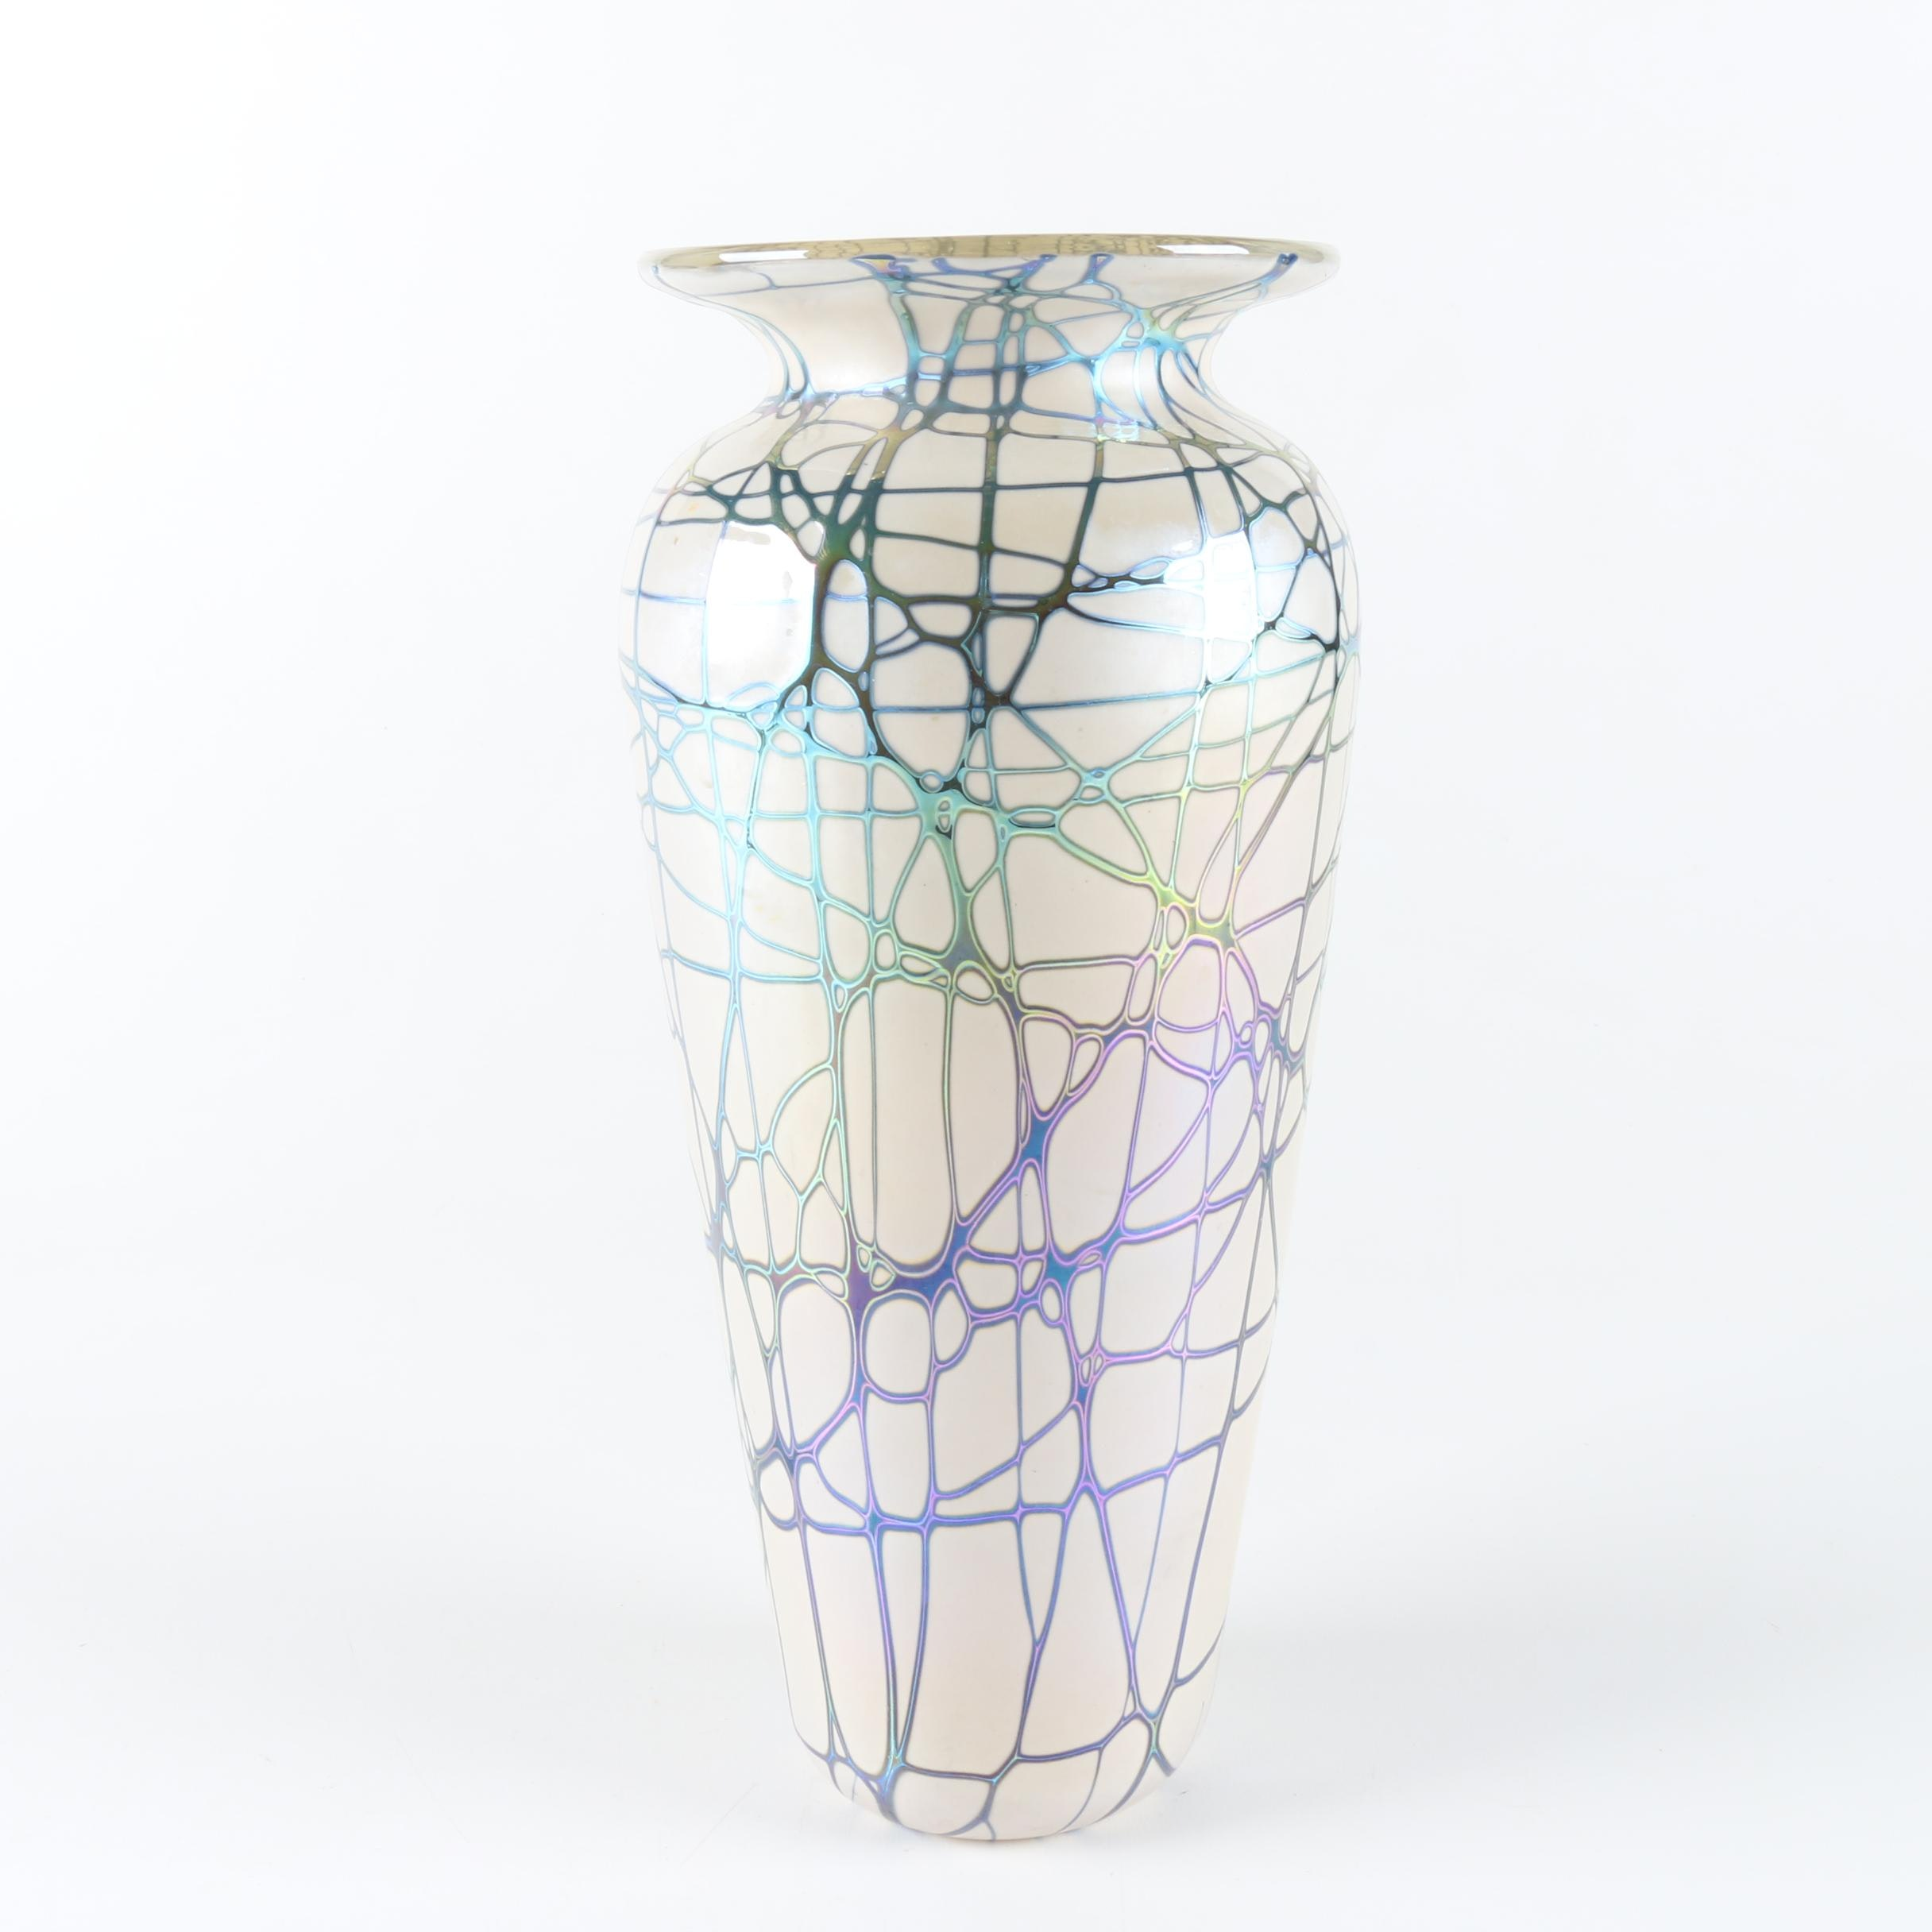 Cased Glass Vase with a Blue-Green Iridescent Exterior